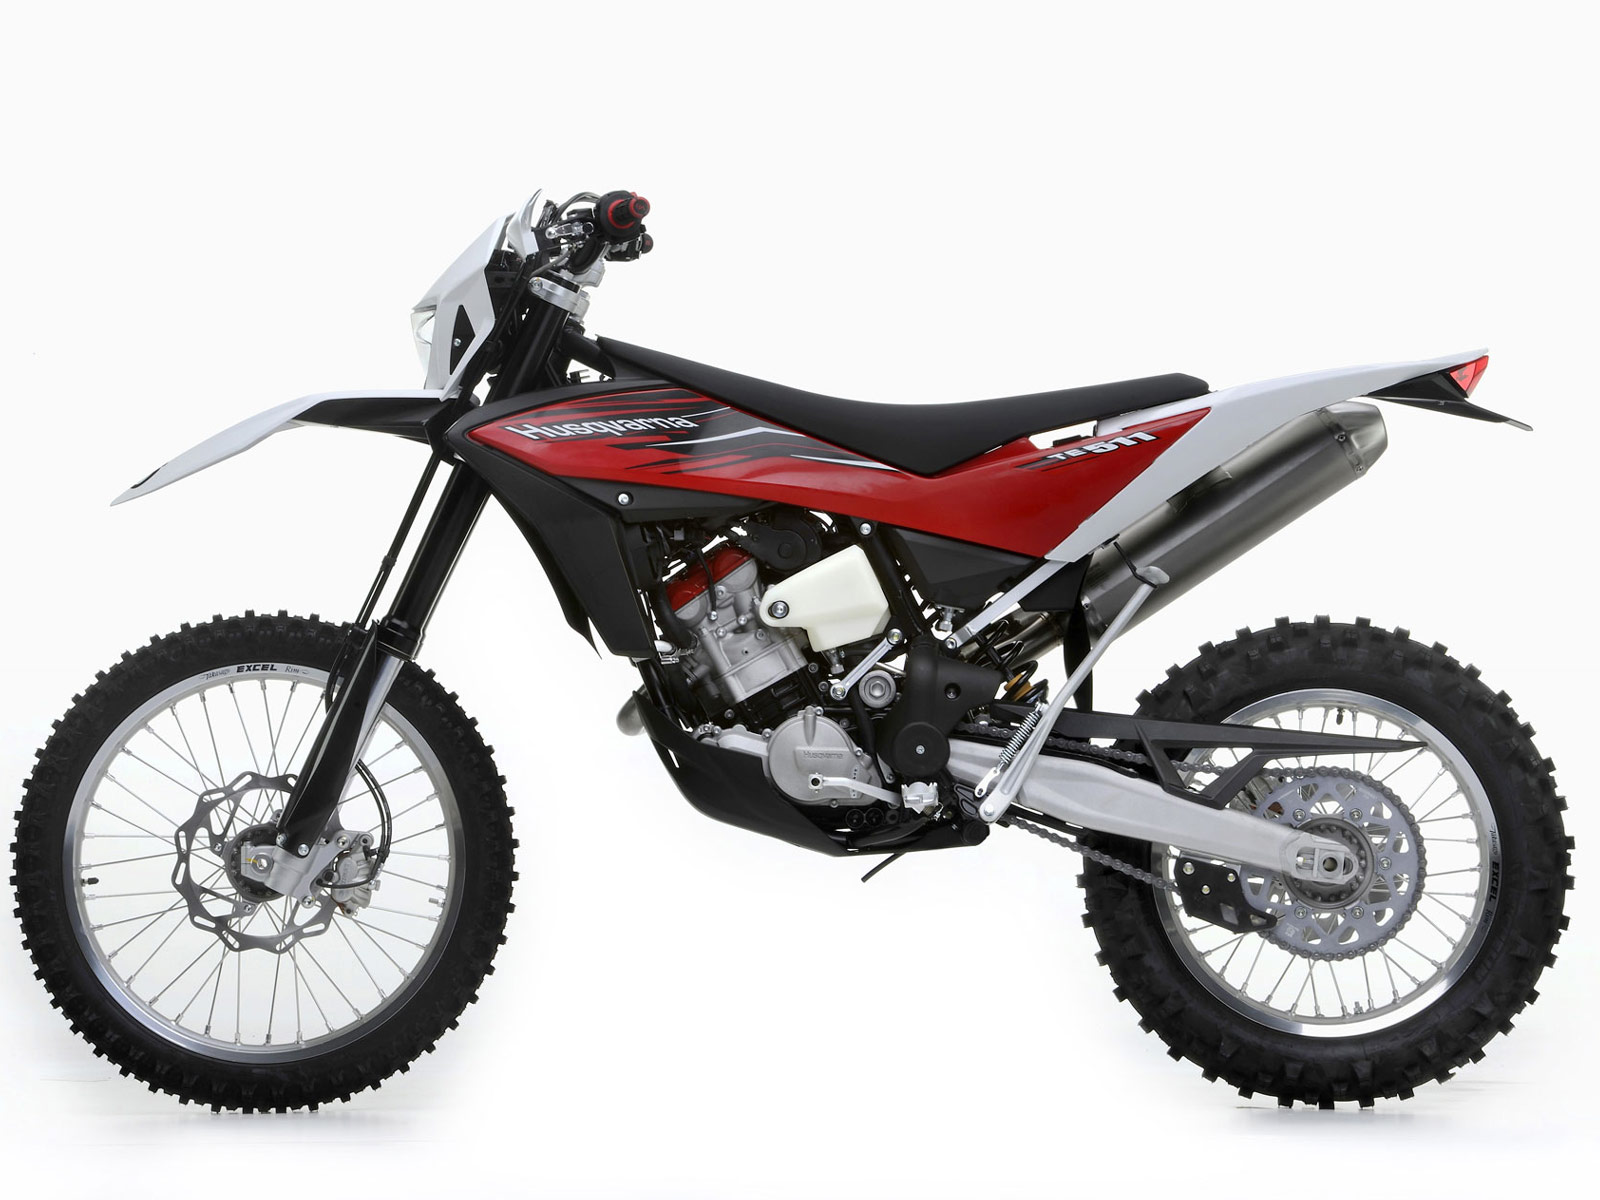 Husqvarna te511 photo - 1